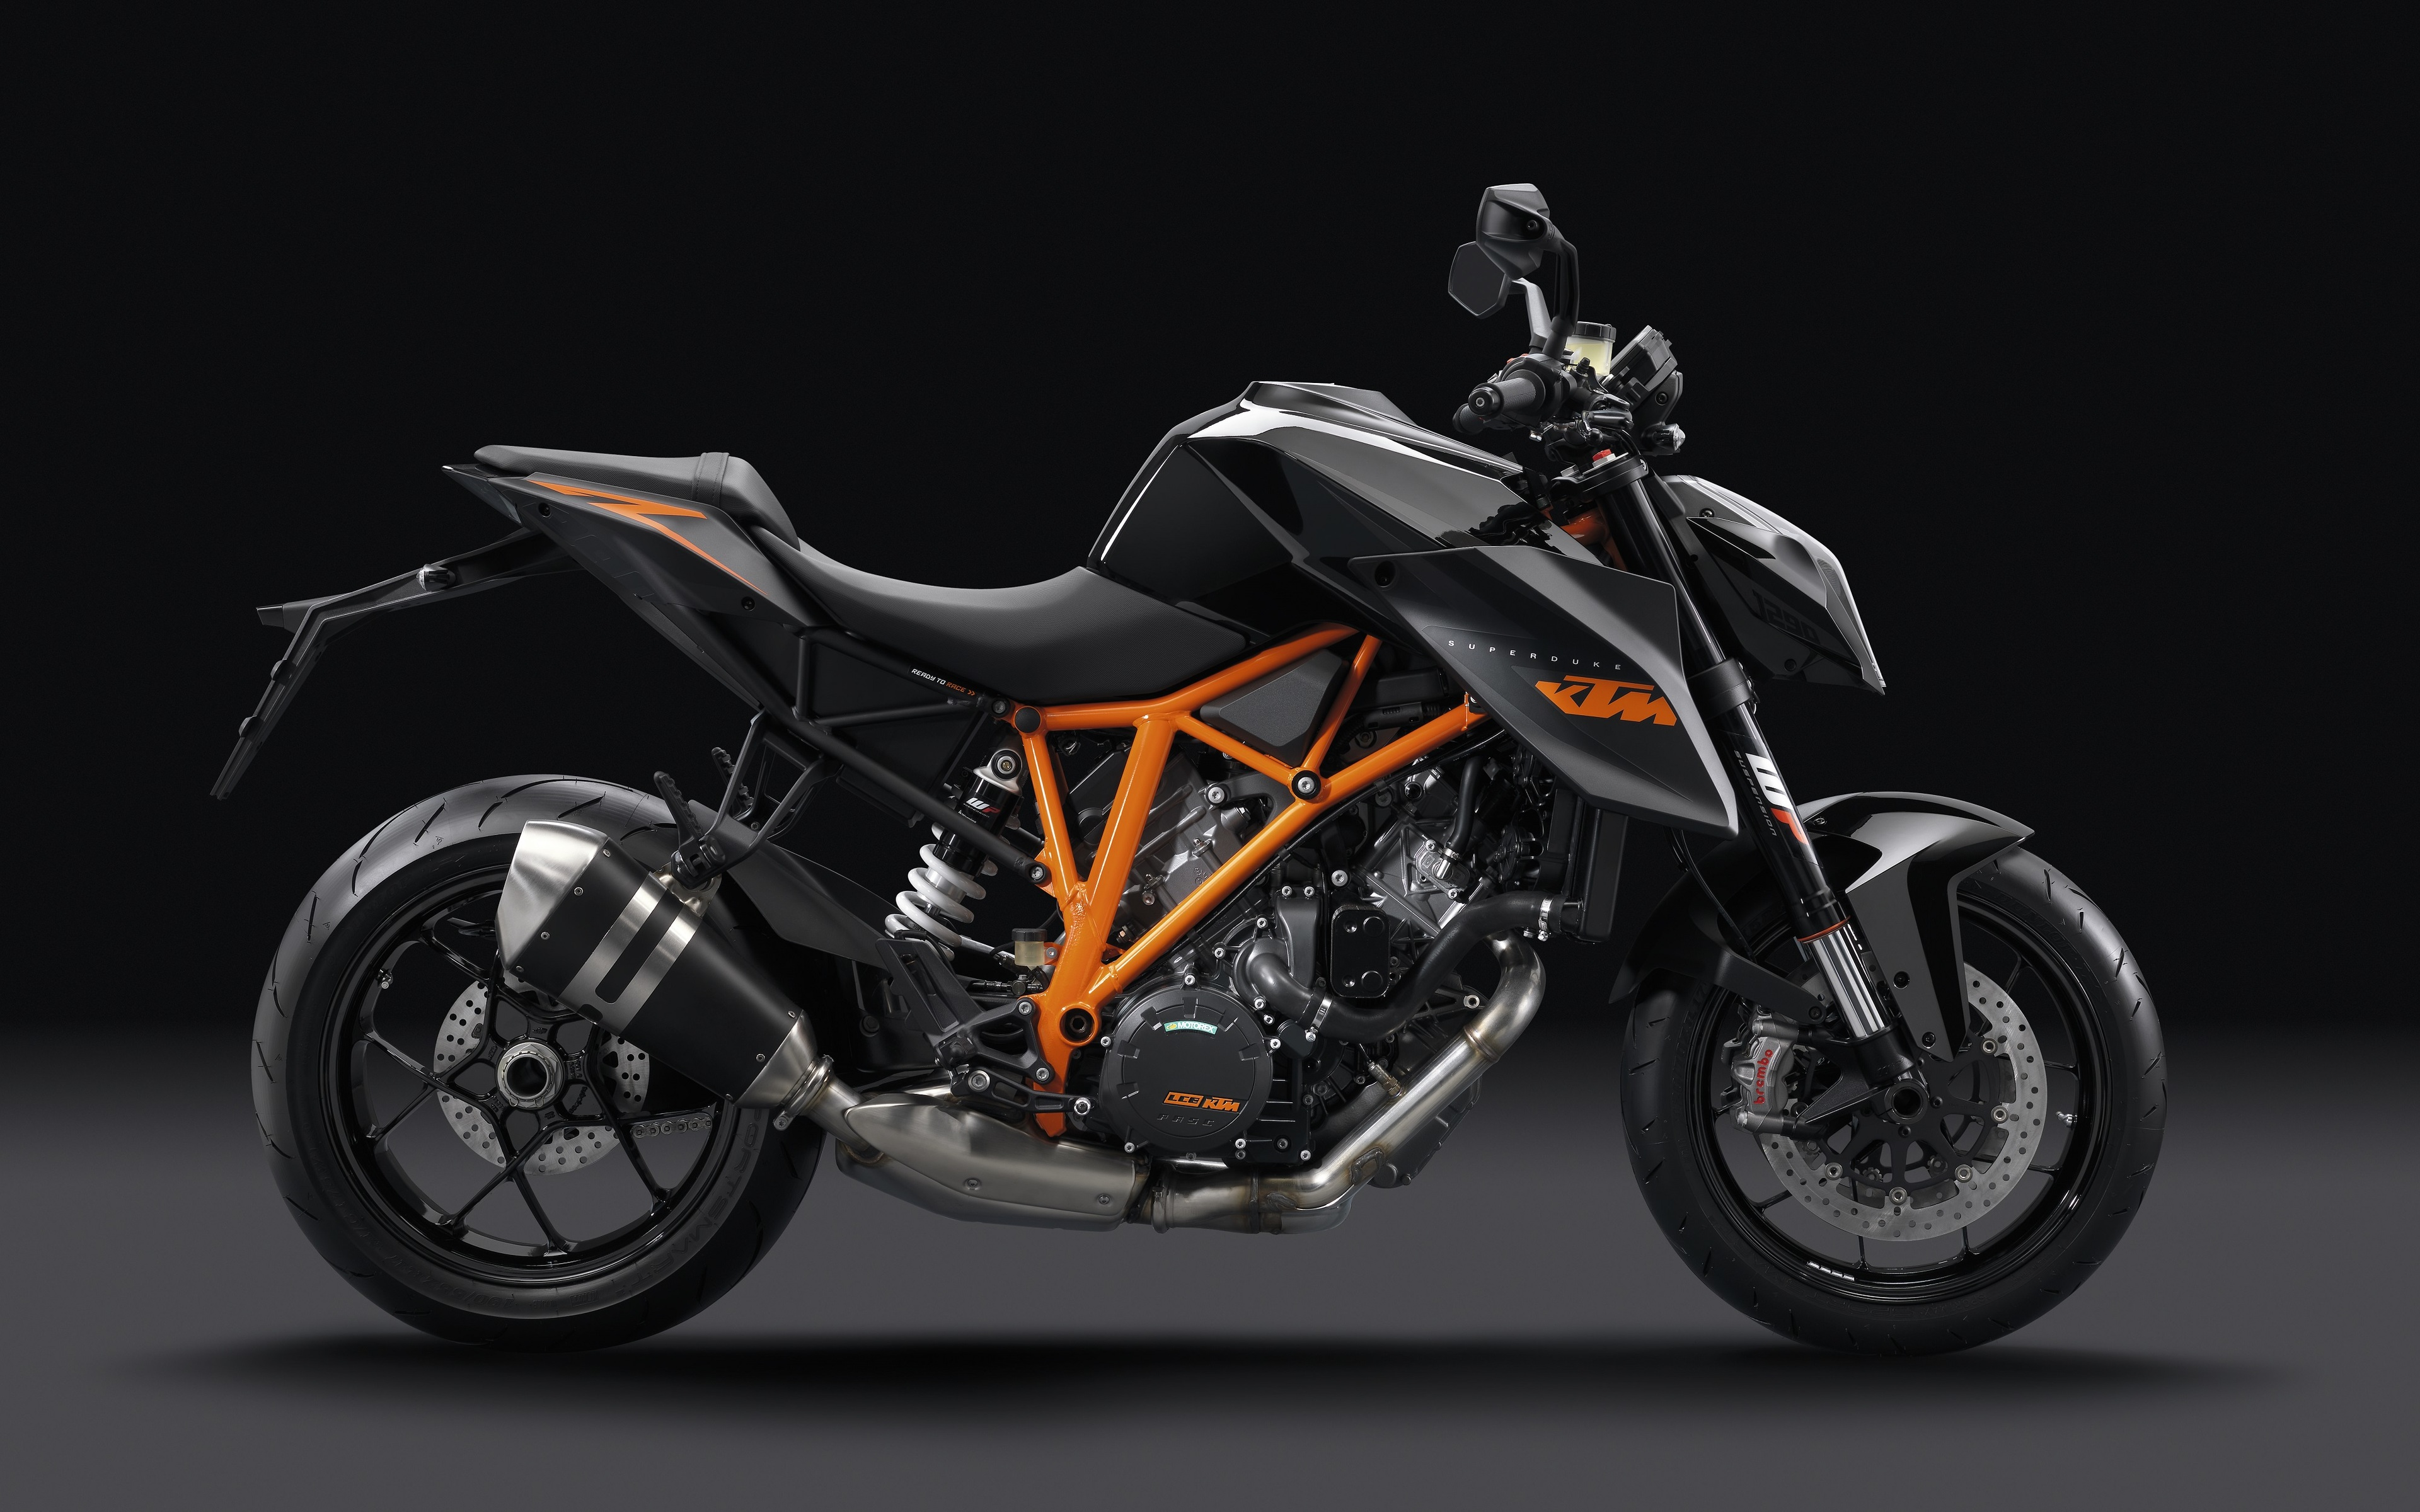 Duke 1290 KTM Bike Wallpaper For Desktop Download in HD 4K 3840x2400